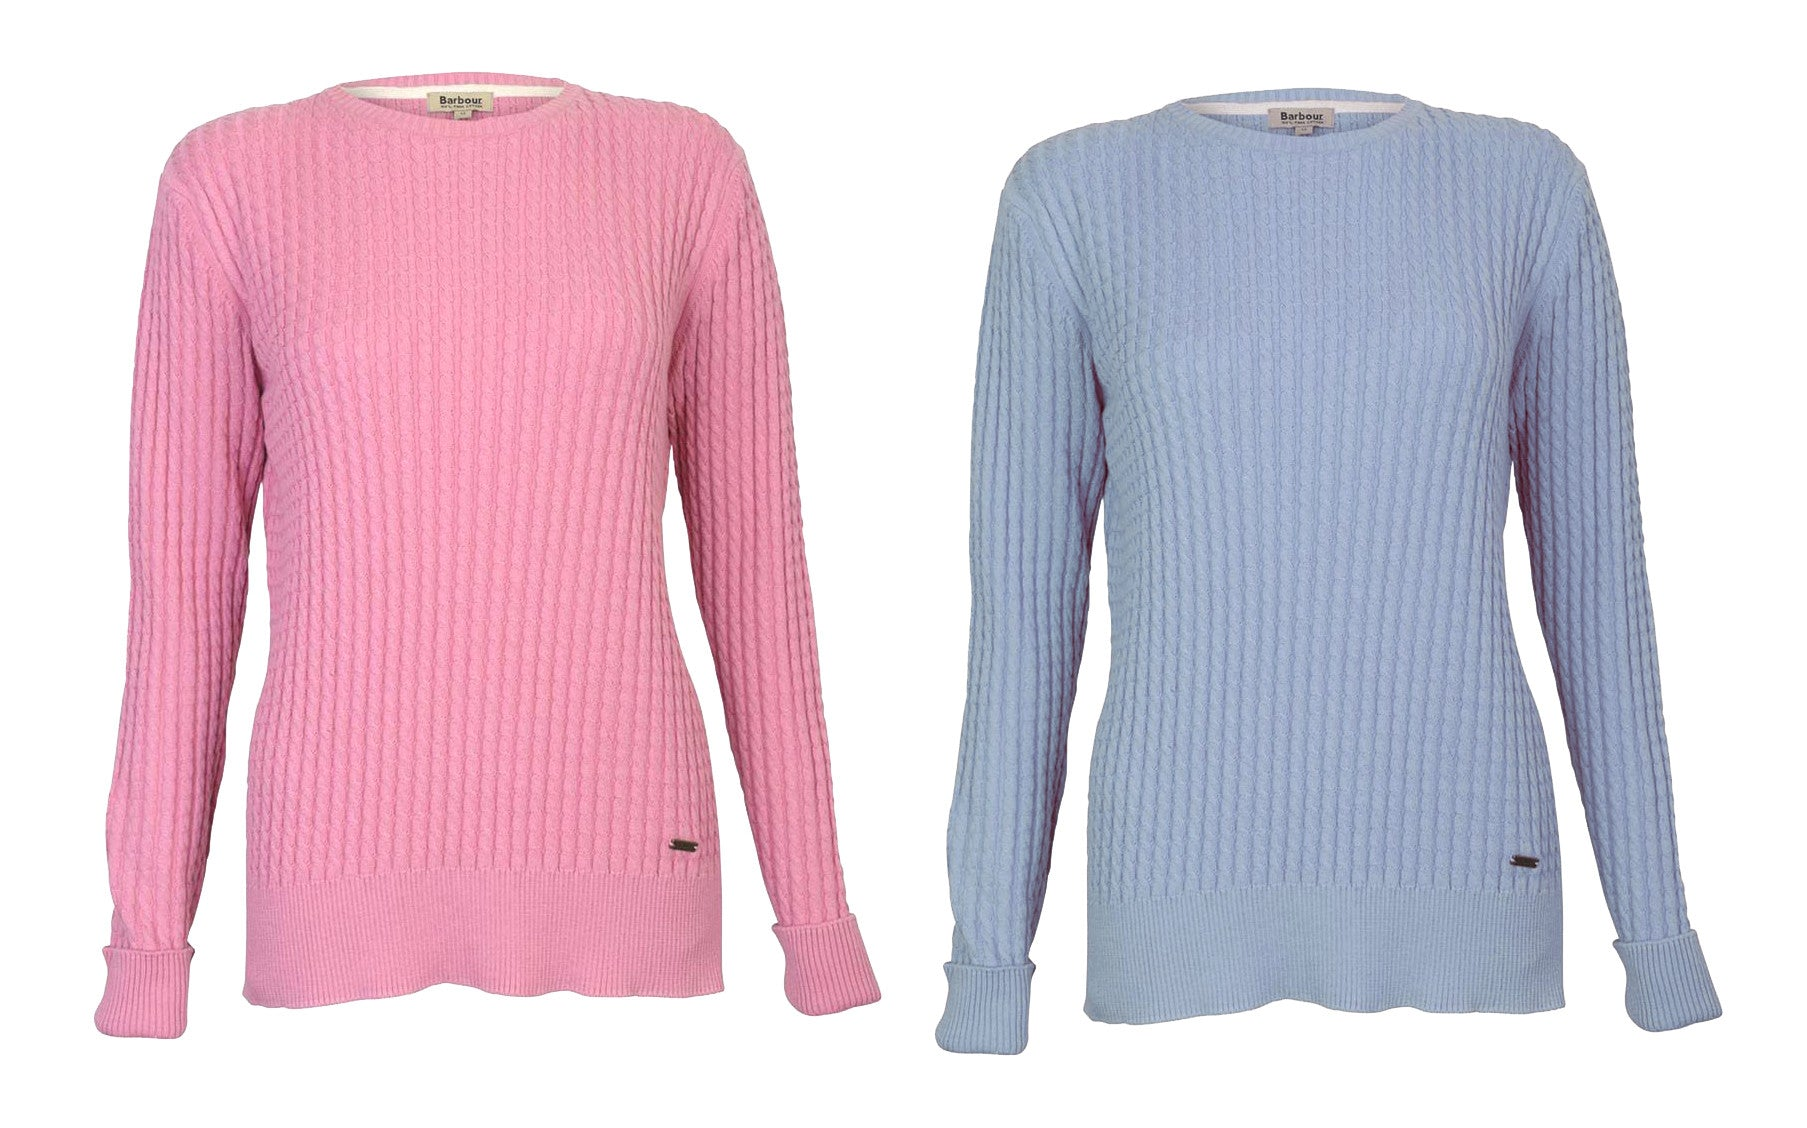 Barbour Daisy Crew Neck Sweater - North Shore Saddlery